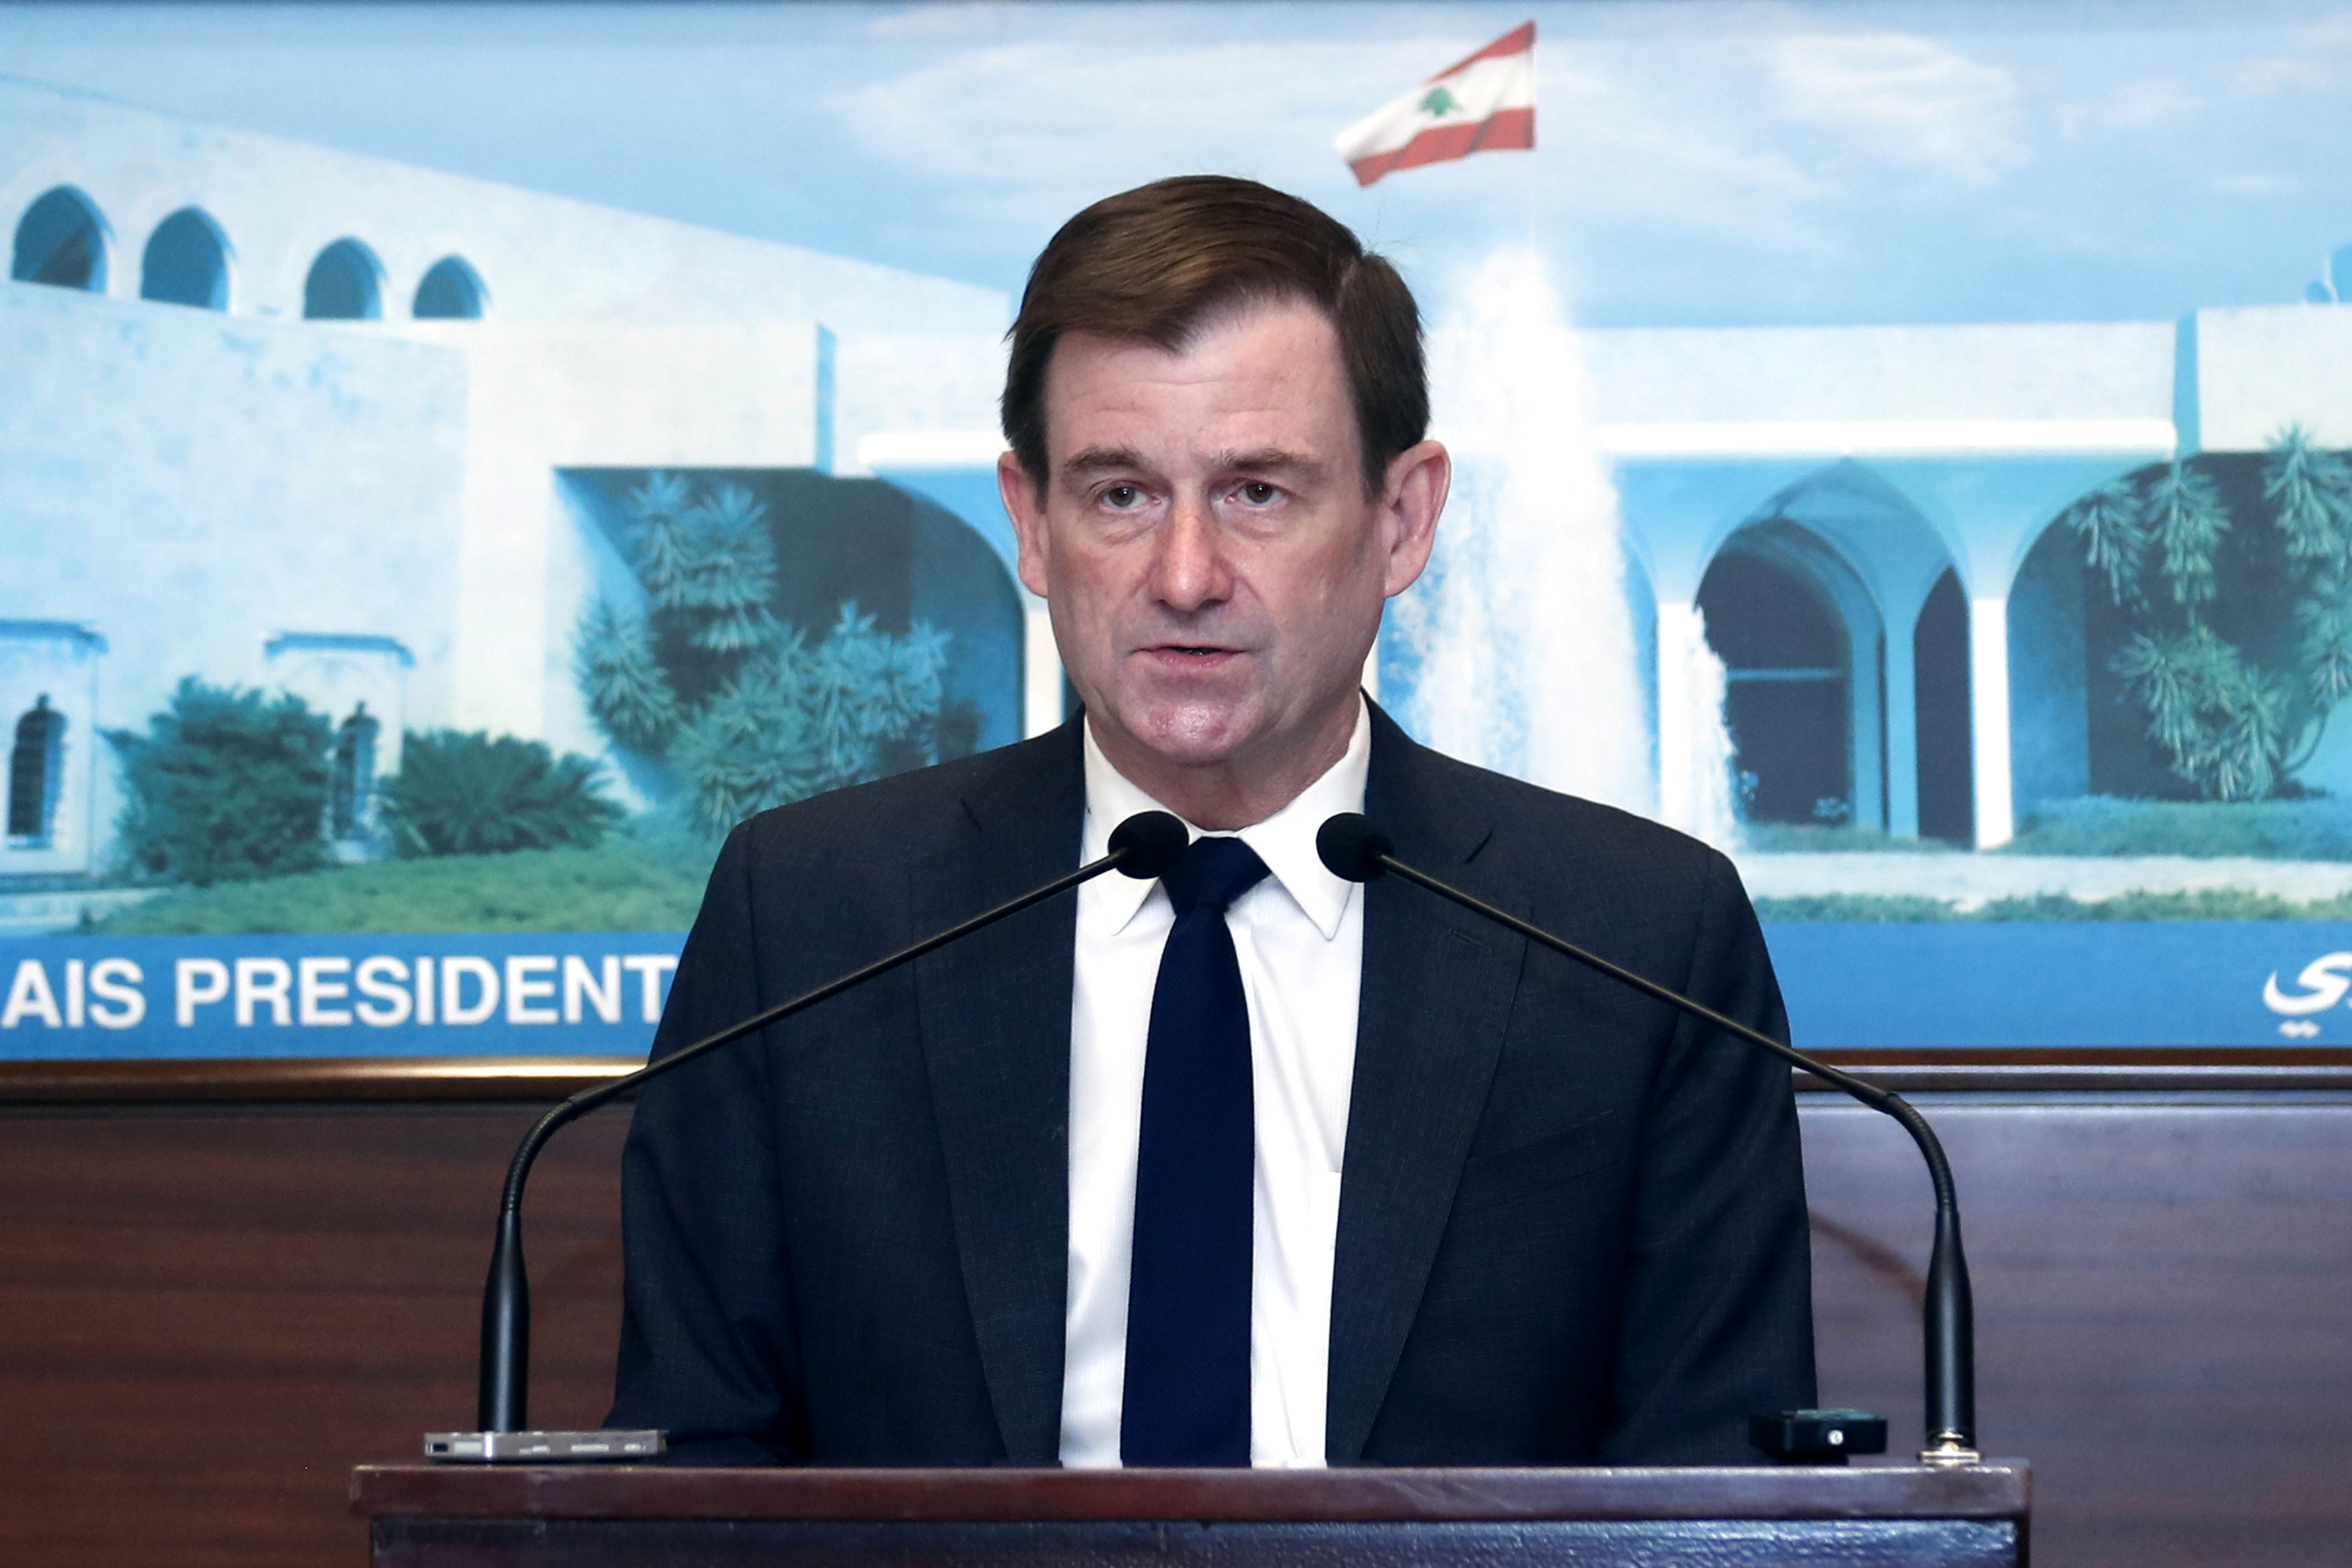 U.S. Under Secretary of State for Political Affairs David Hale speaks after meeting with Lebanon's President Michel Aoun at the presidential palace in Baabda, Lebanon April 15, 2021. Dalati Nohra/Handout via REUTERS